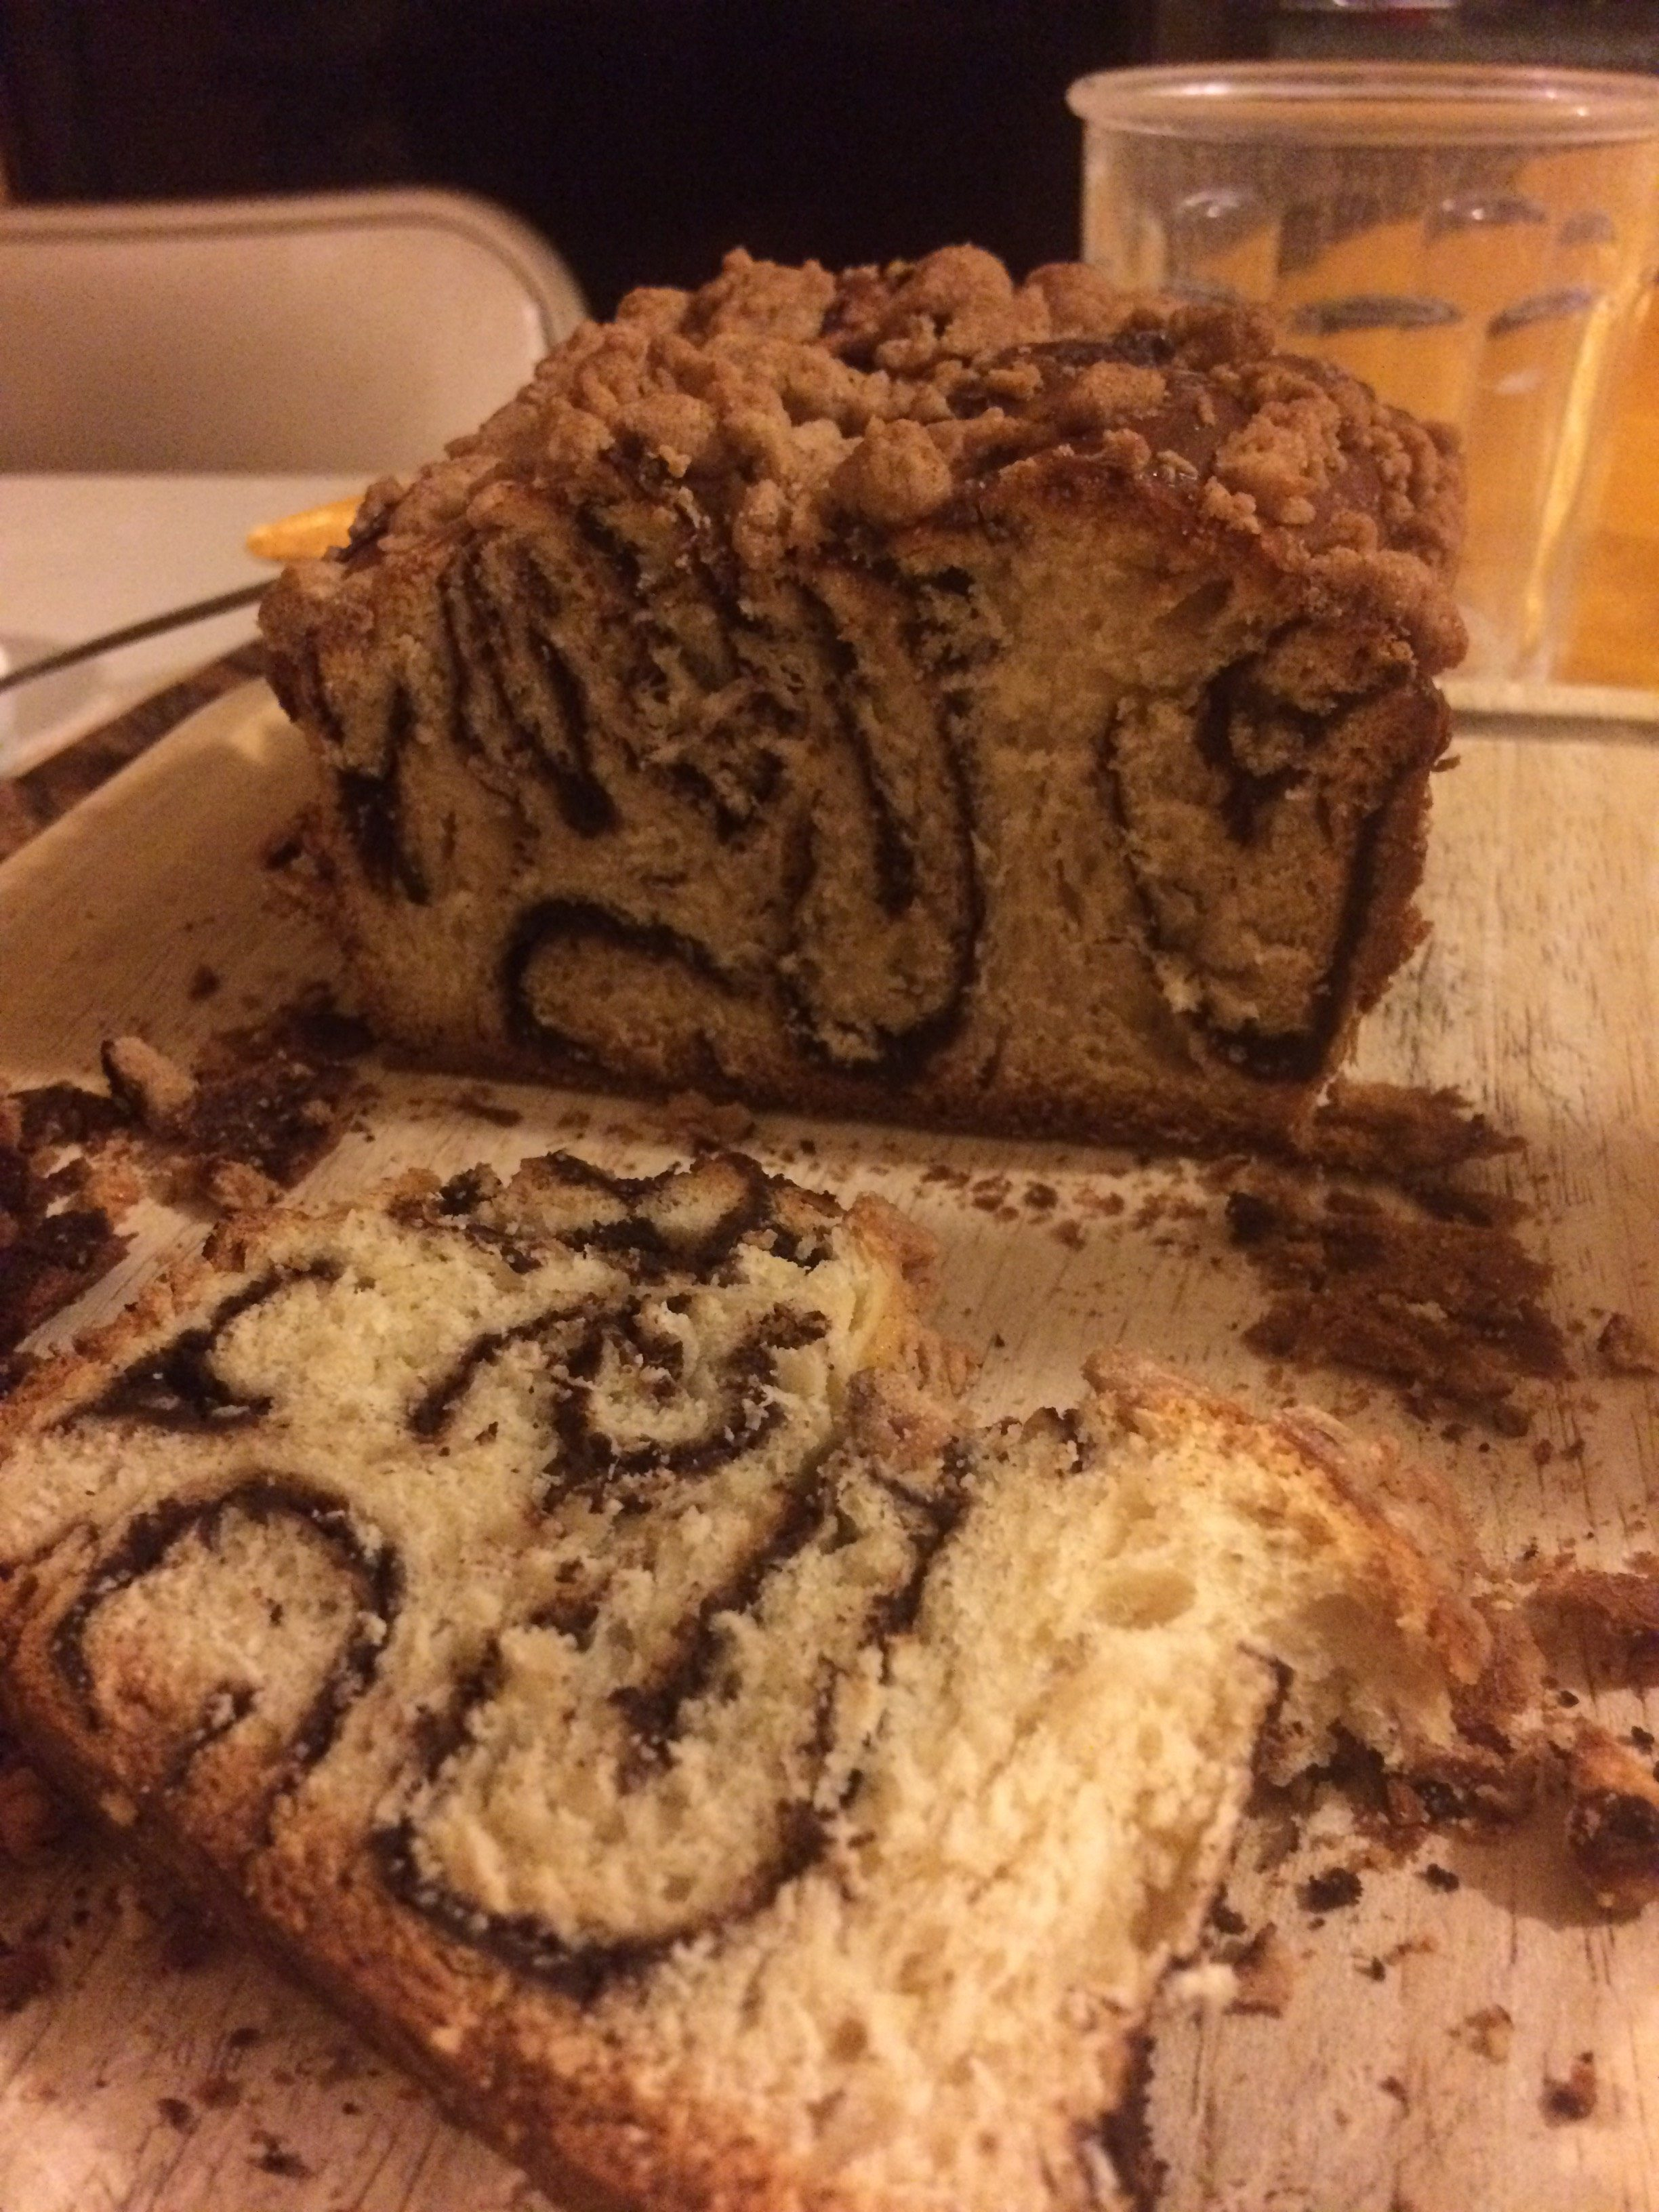 My daughter will carry on the Polish tradition of Babka